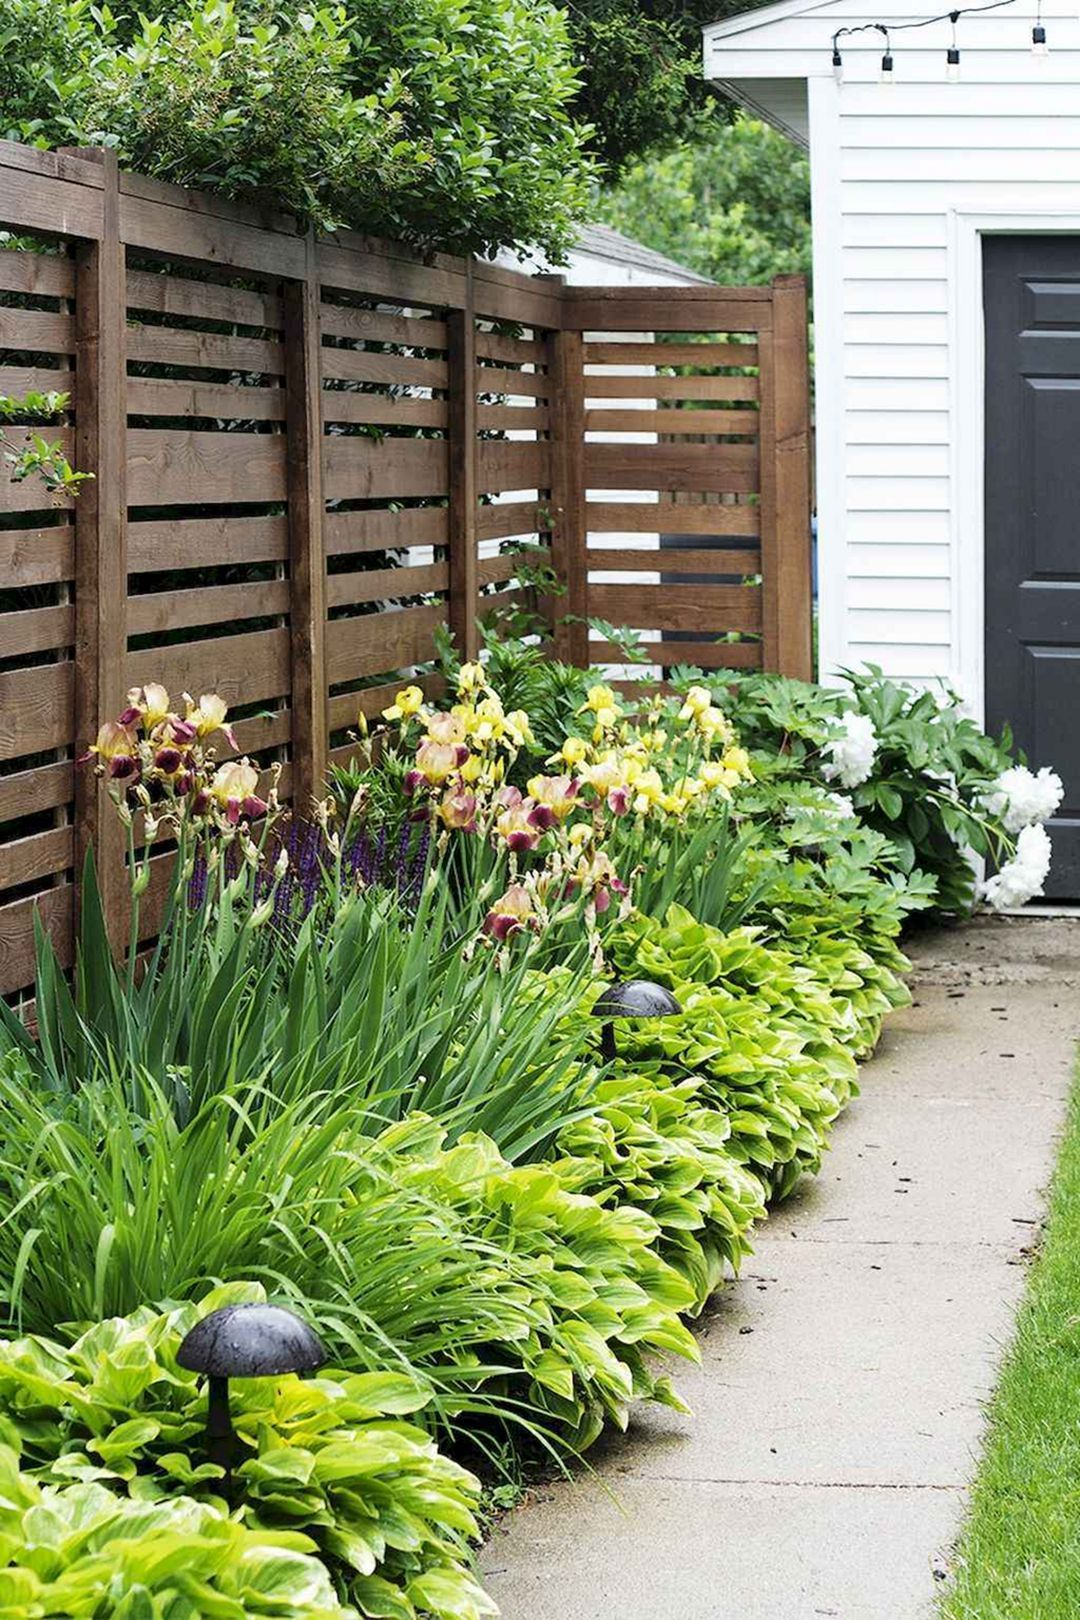 Backyard Privacy Fence Landscaping Ideas On A Budget Decor pertaining to 14 Awesome Initiatives of How to Craft Privacy Backyard Ideas